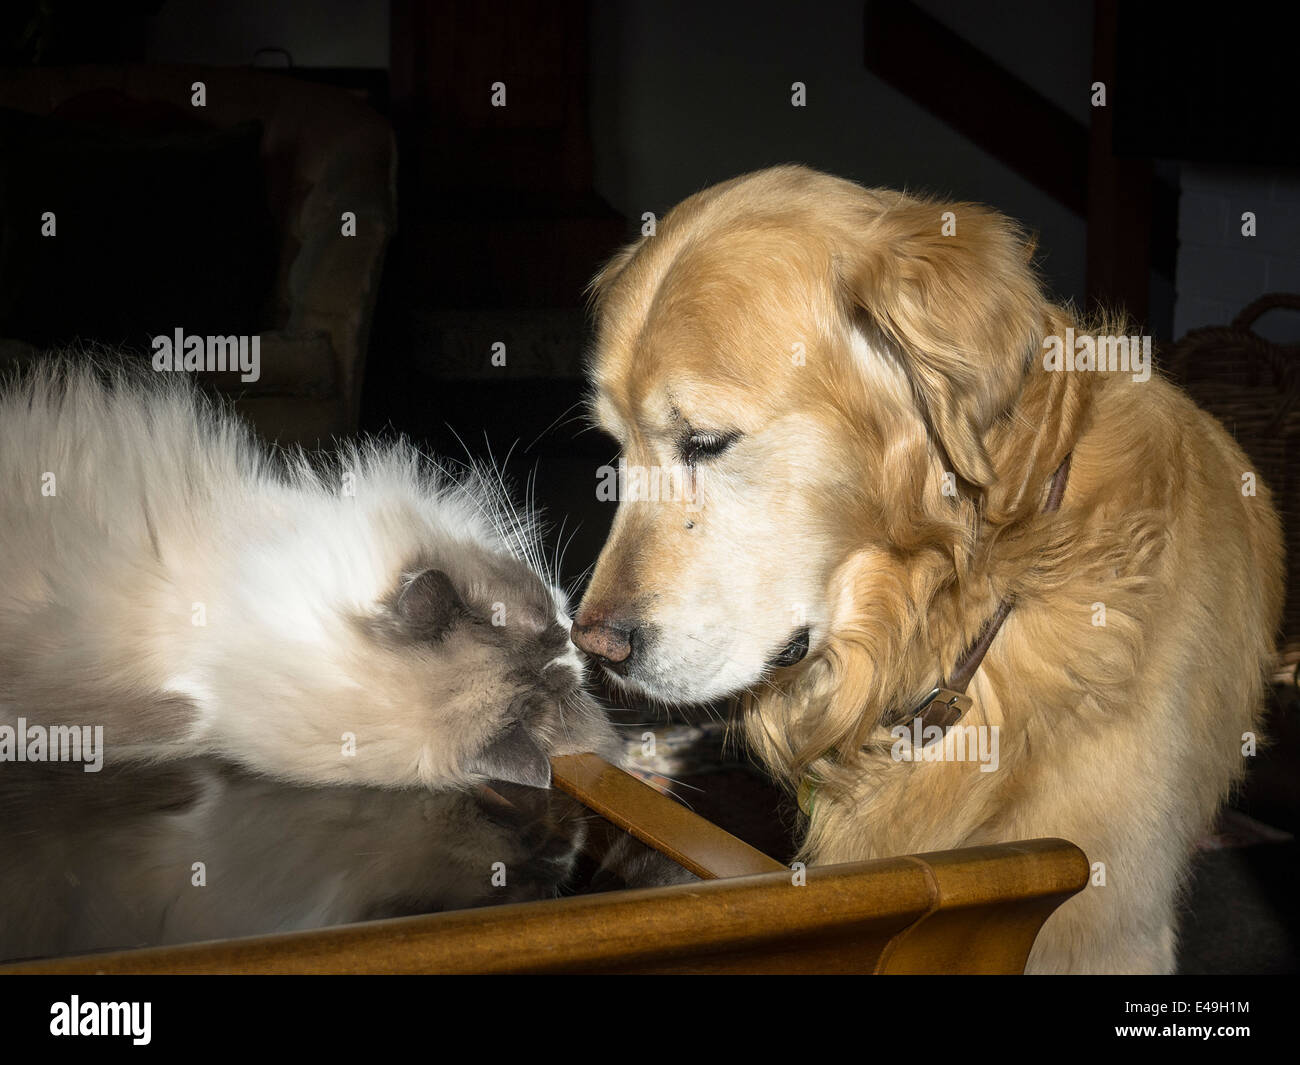 Close relationship between a Ragdoll cat and golden retriever dog in UK - Stock Image